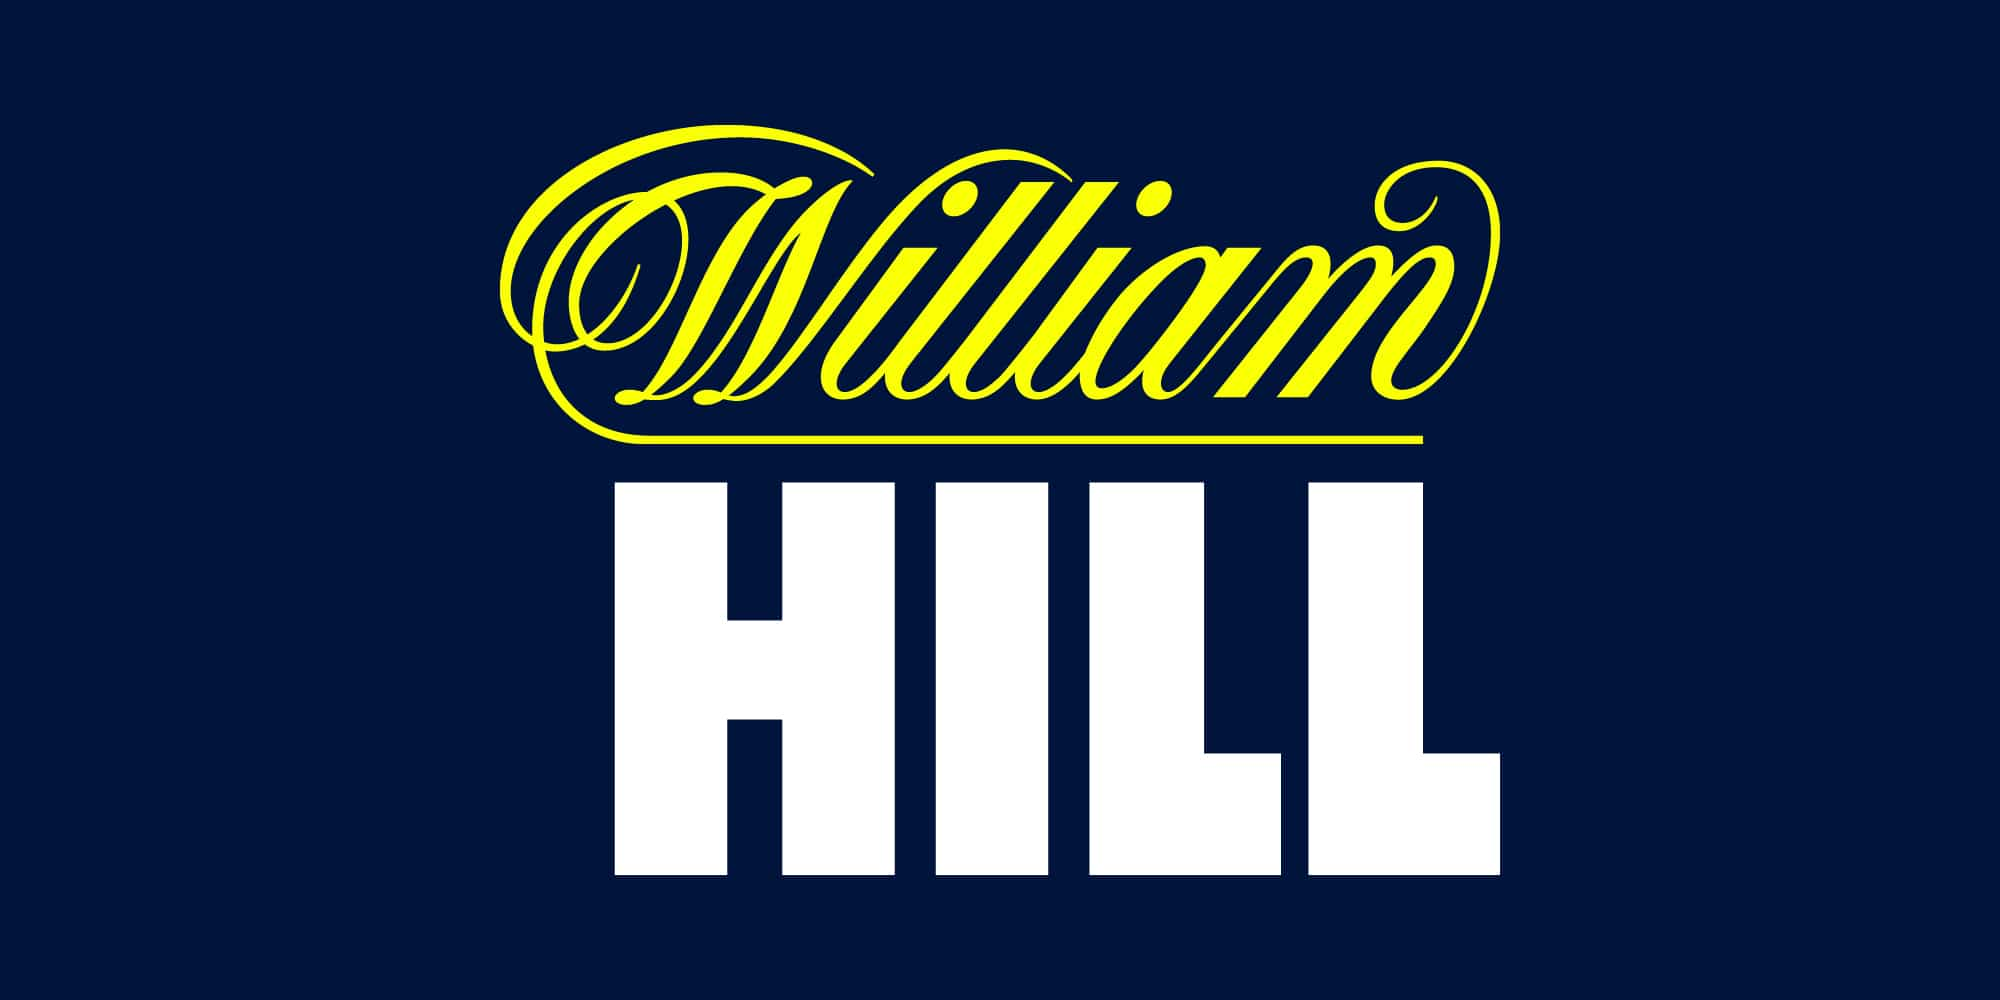 Does william hill have comp points redemption